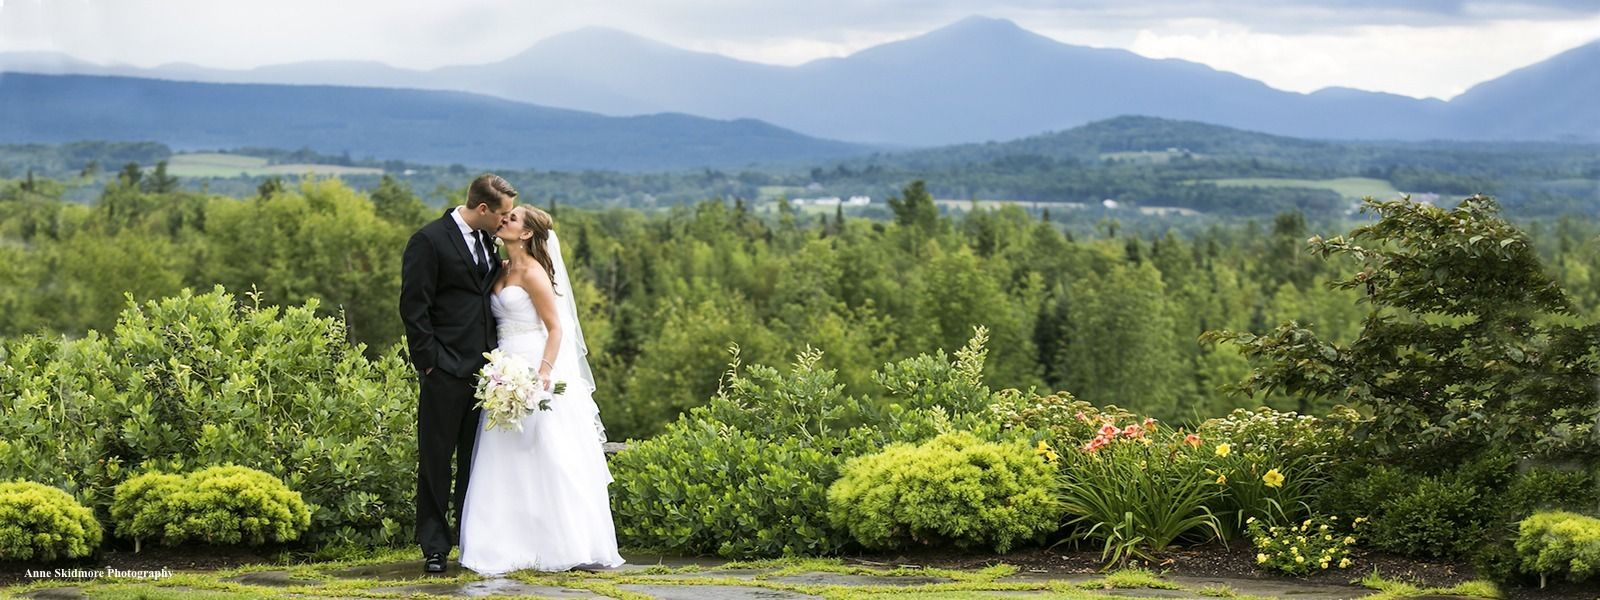 Weddings At Our White Mountain Nh Resort